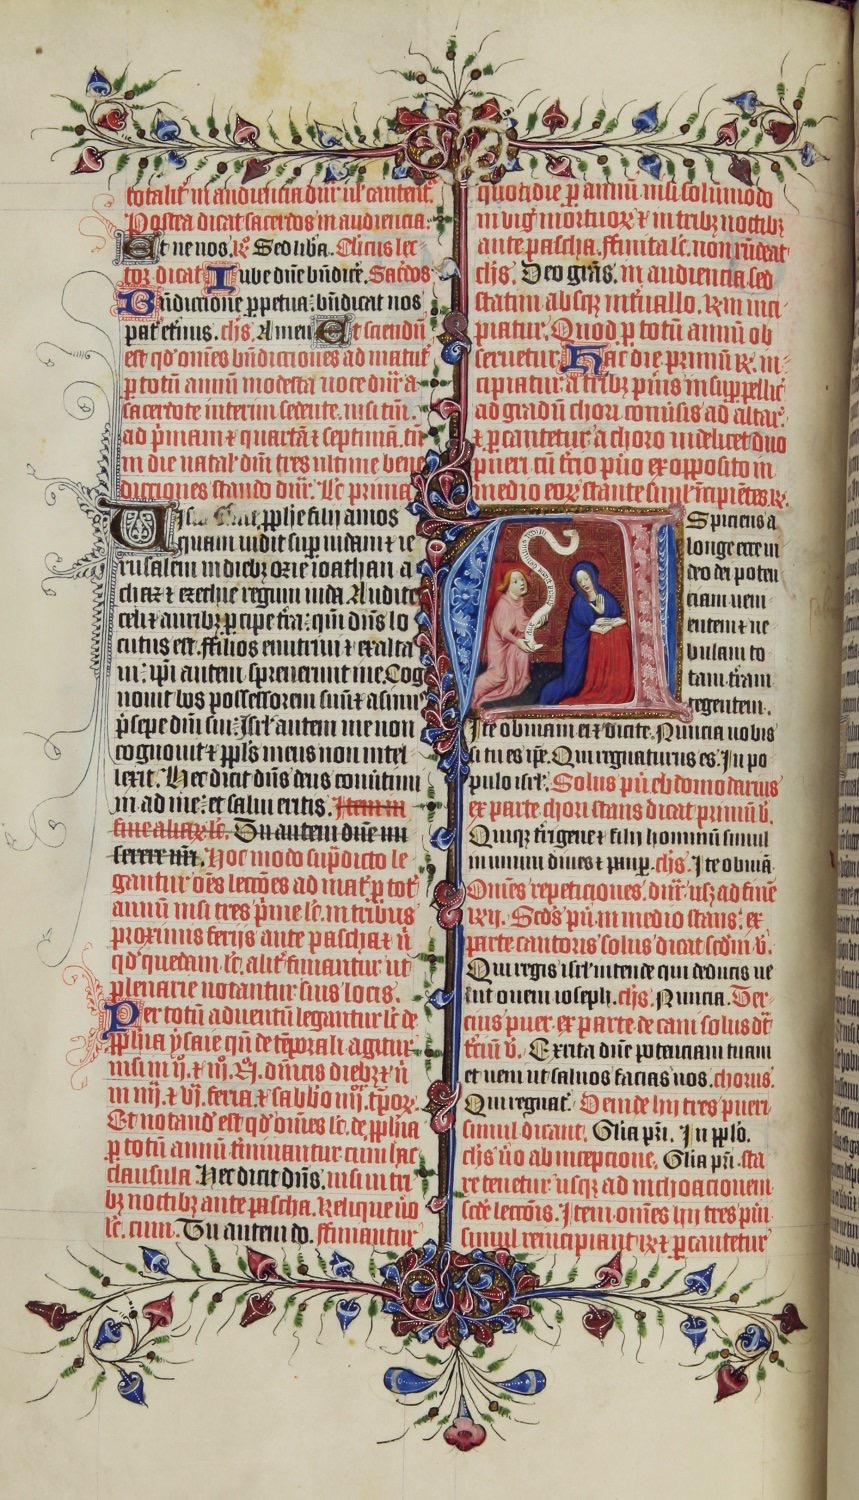 Image: Advent from the Chicheley Breviary with a decorated initial showing the Annunciation. [MS69 f.4v.]. Lambeth Palace Library.